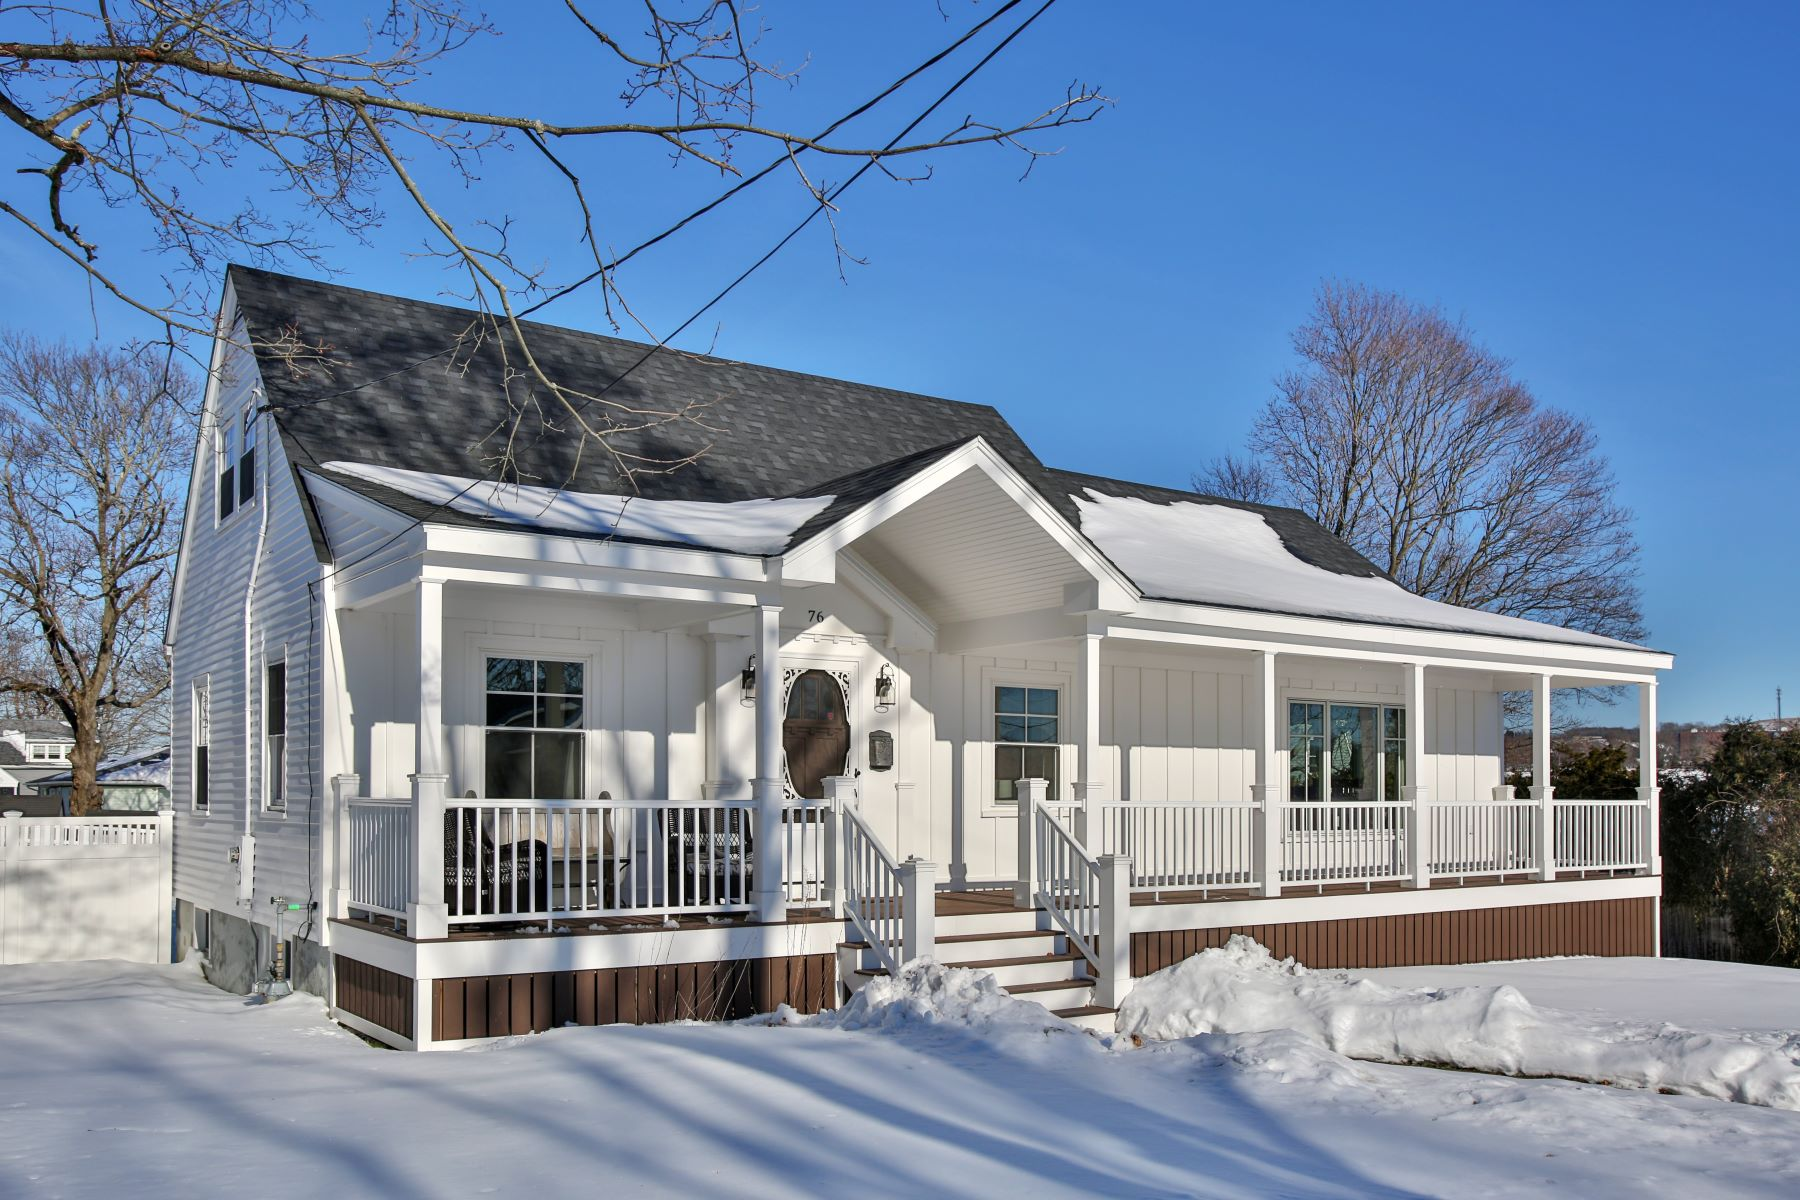 Single Family Home for Sale at 76 Gay St, Somerset, MA Somerset, Massachusetts, 02726 United States